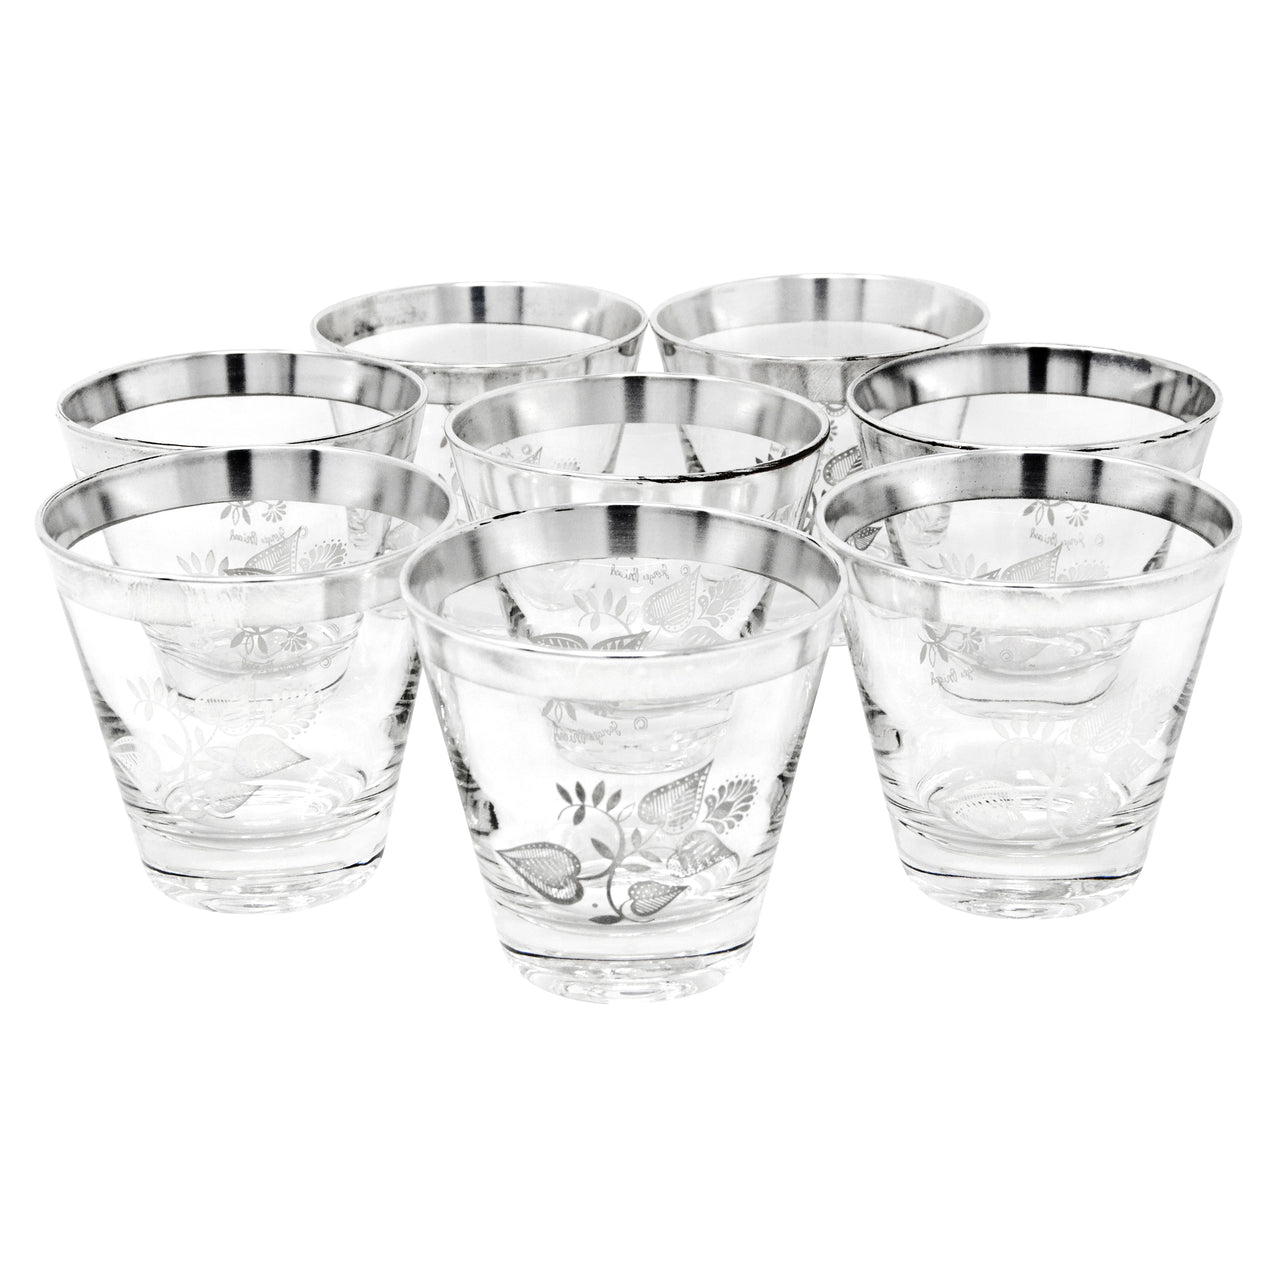 Georges Briard Sterling Leaf Old Fashioned Glasses